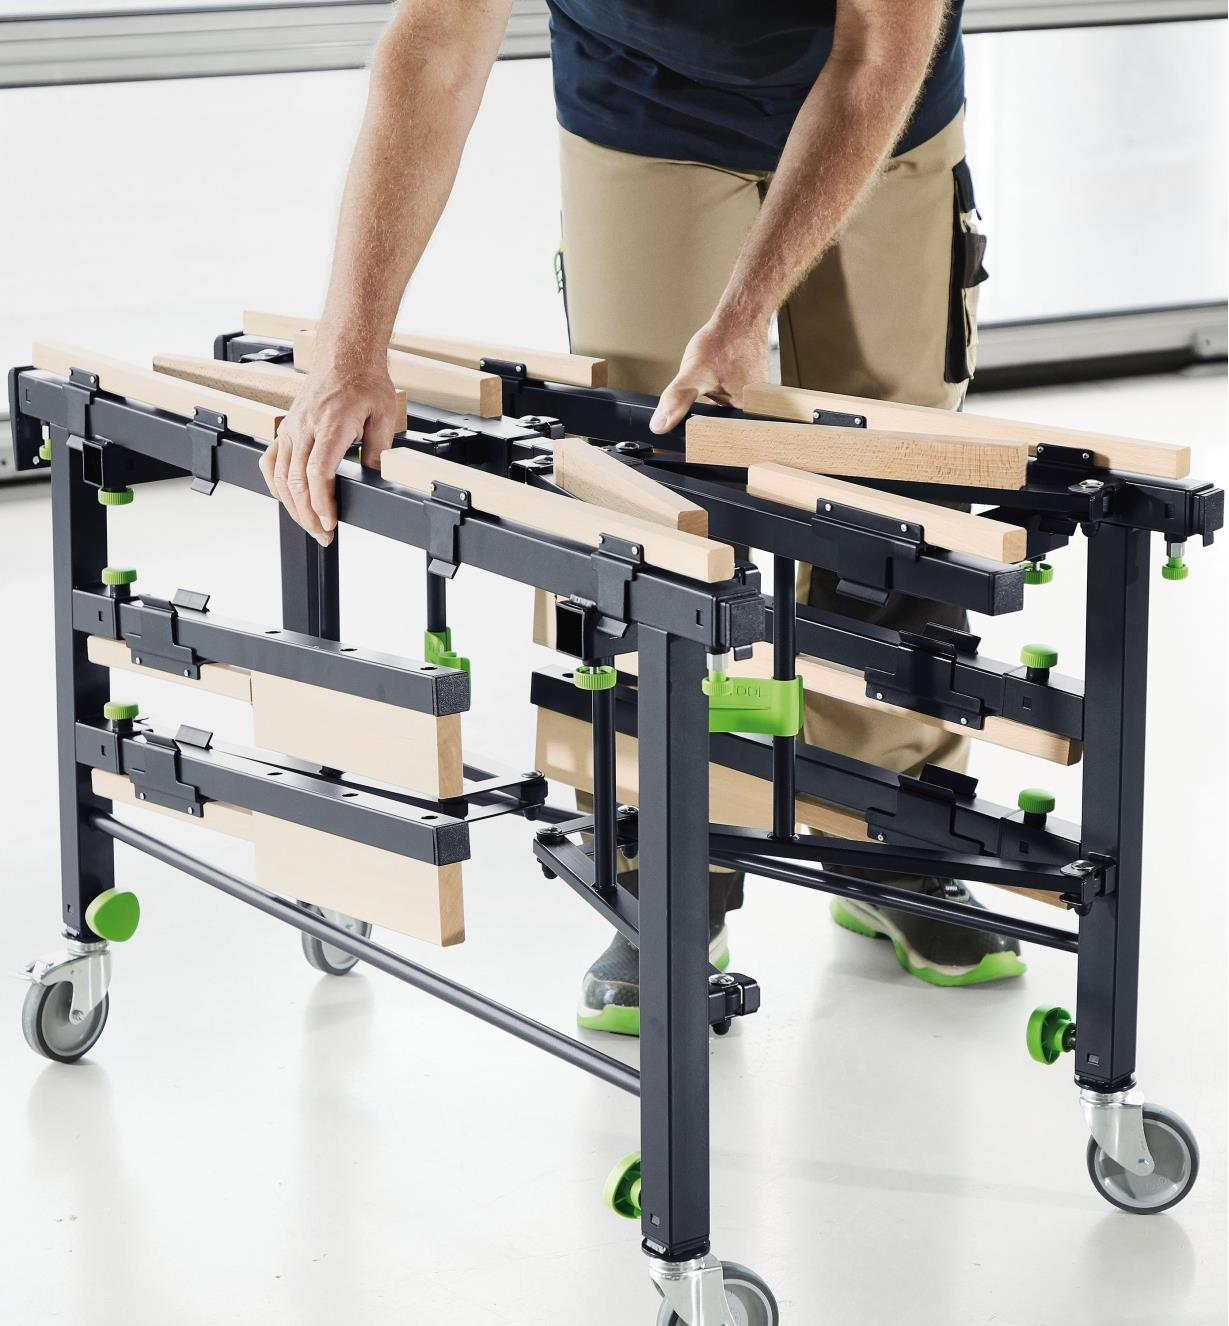 A man folding the mobile sawing table to a more compact size